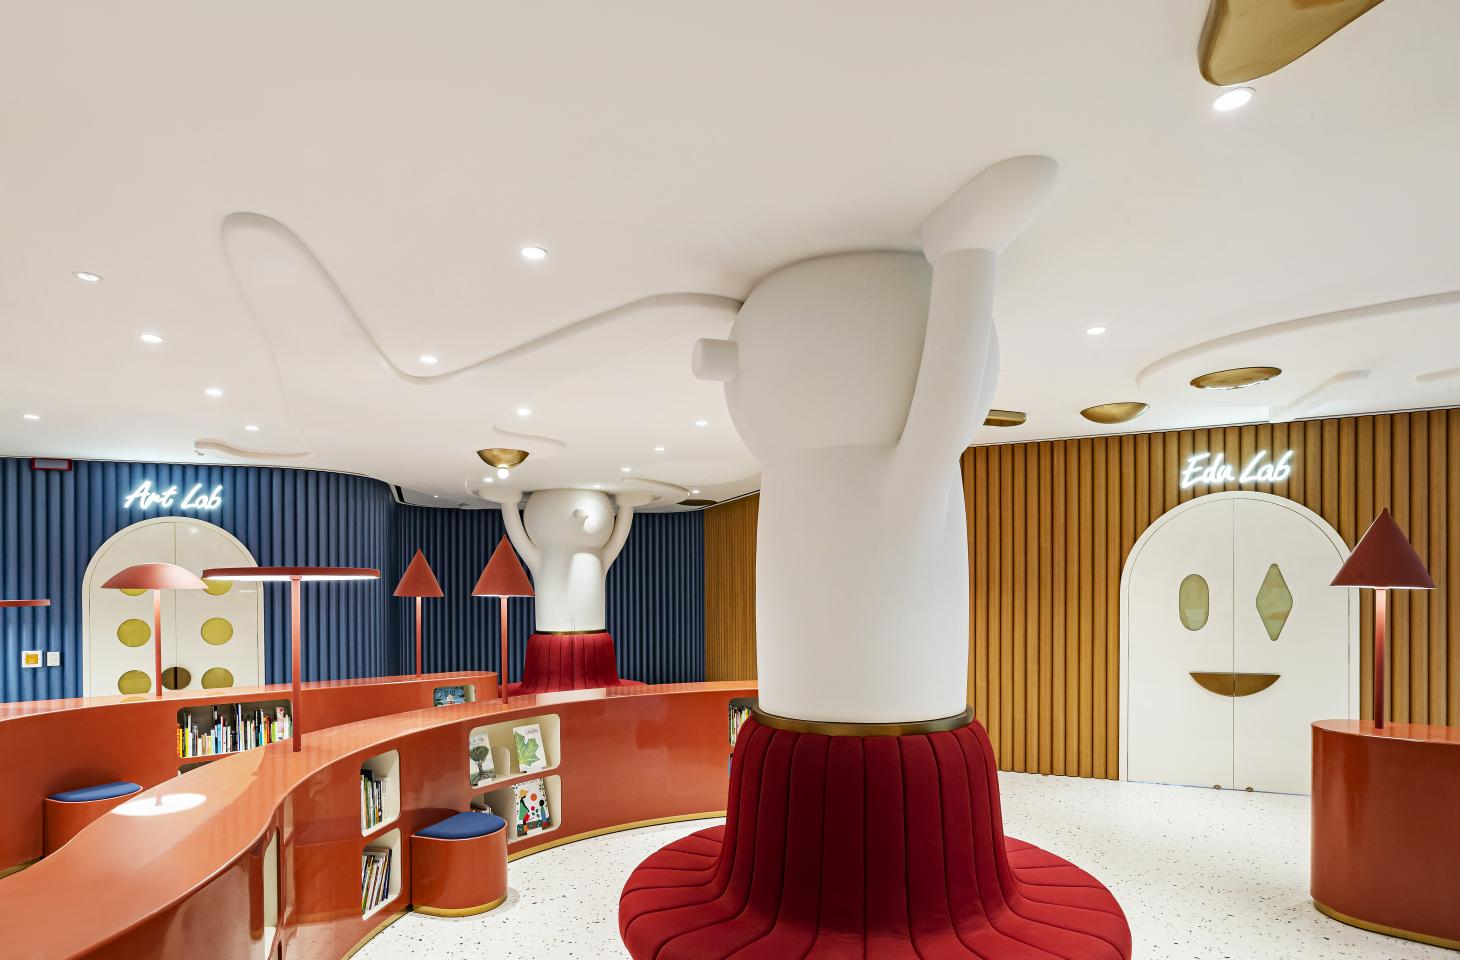 View of MOKA Library by Jaime Hayon, with a pillar transformed into a giant figure holding up the ceiling